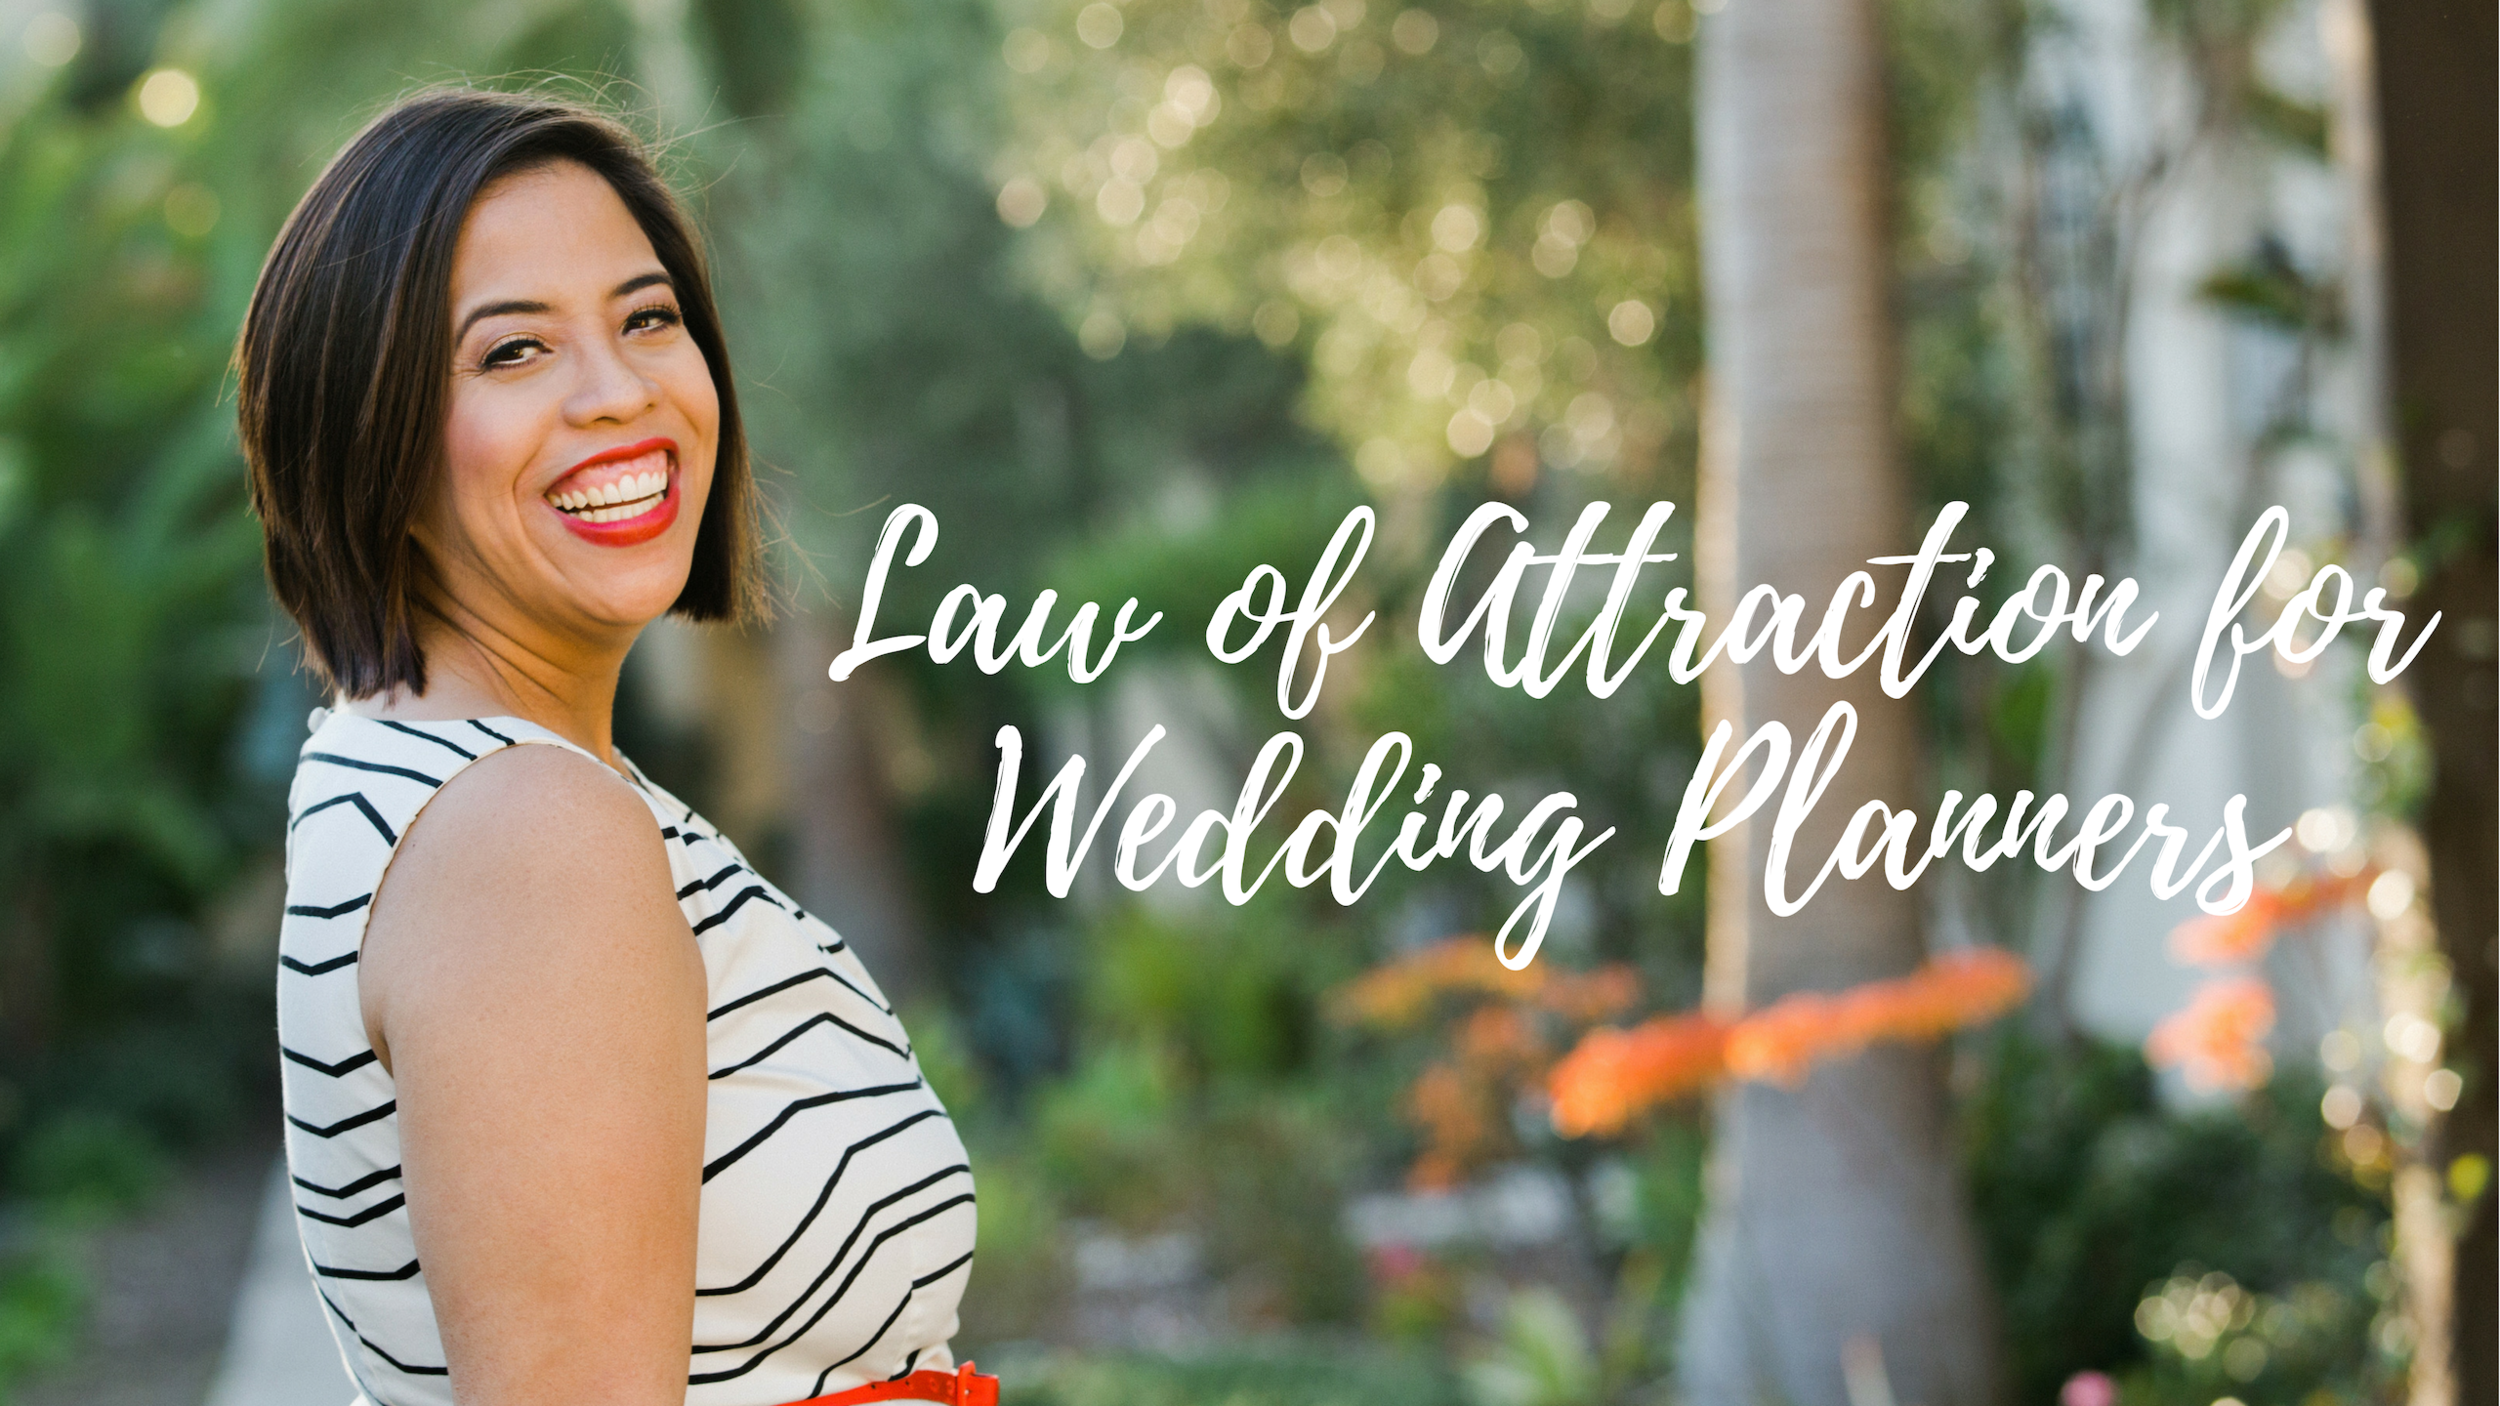 Law of Attraction for Wedding Planners